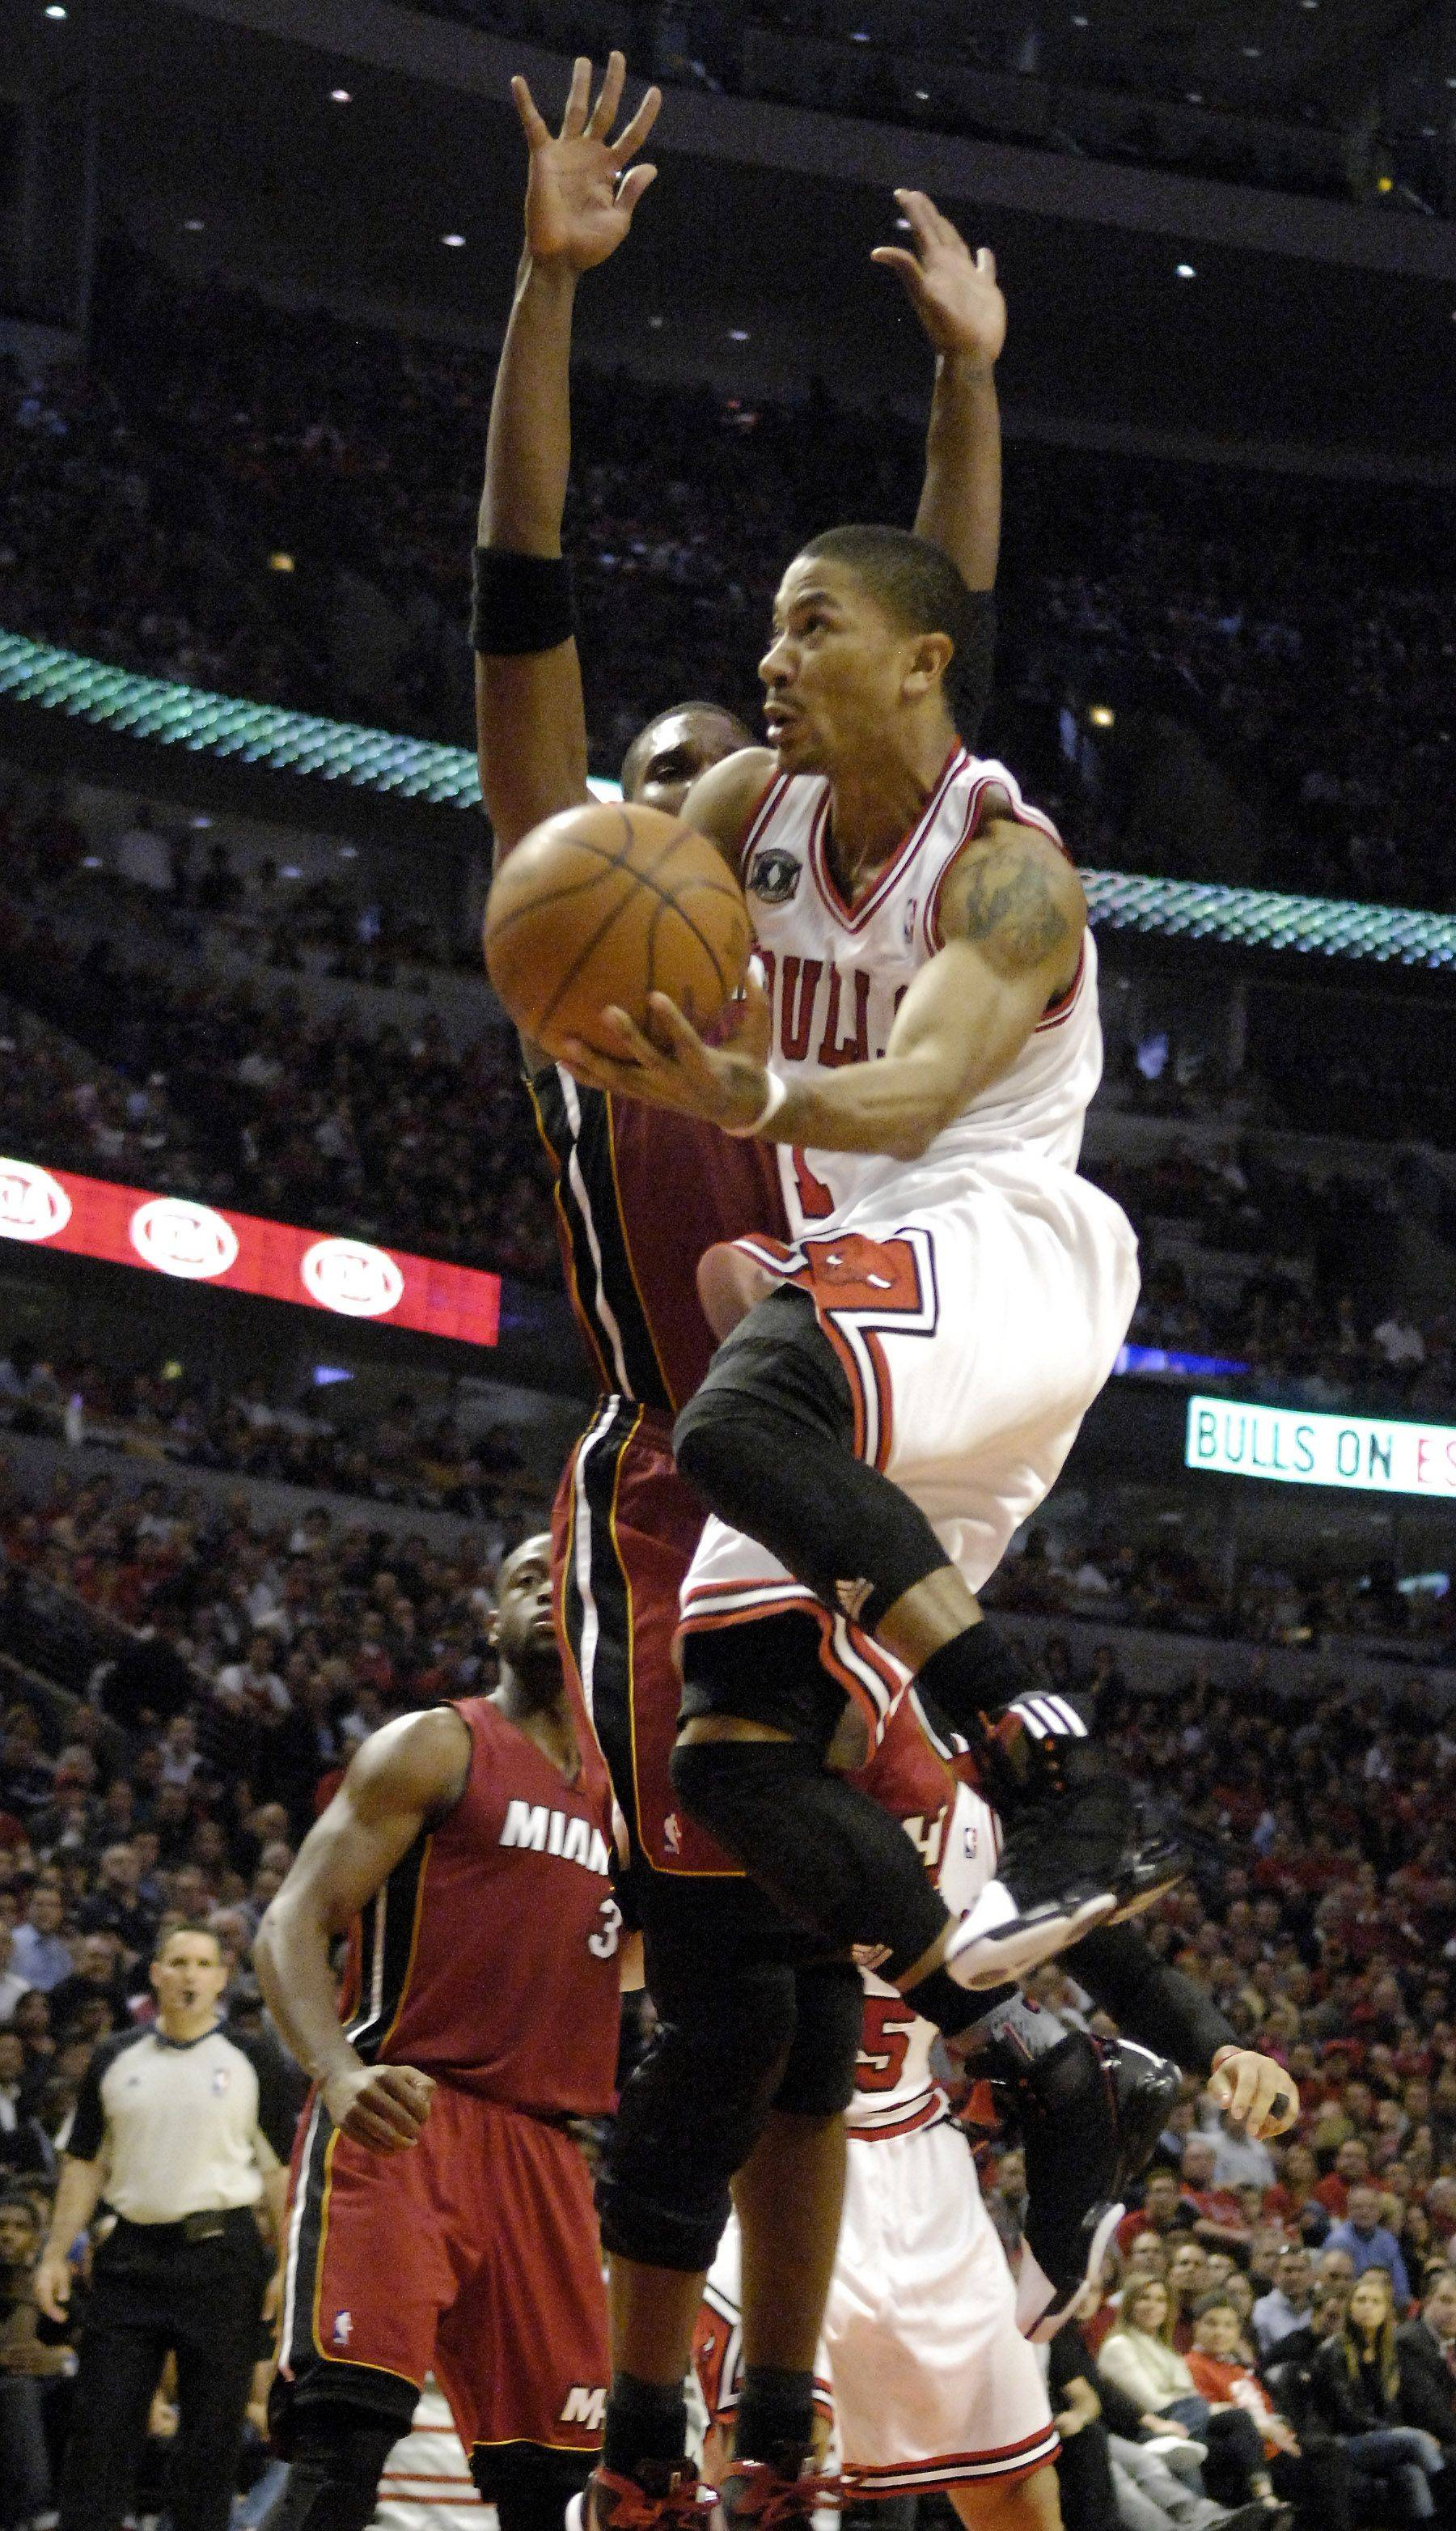 Can Miami recreate Game 2 intensity vs. Bulls?